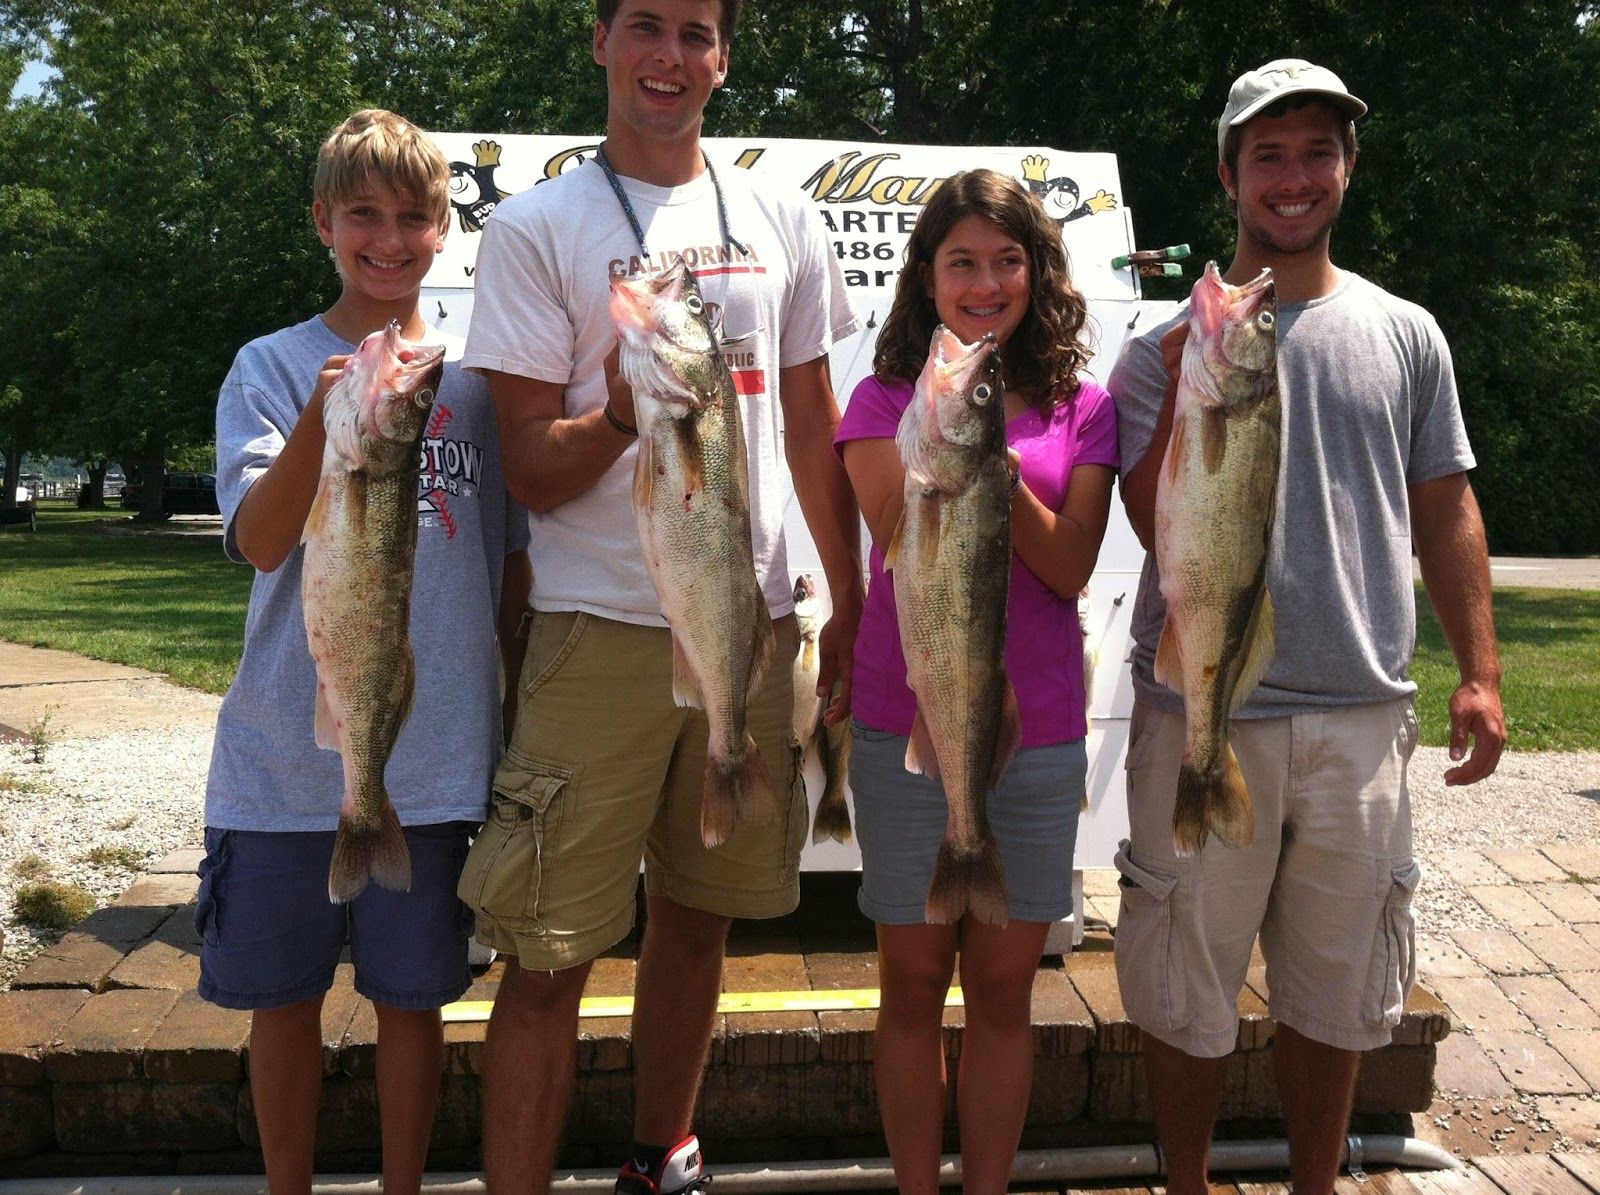 Lake erie walleye fishing reports east of middle island 7 21 for Odnr fishing report